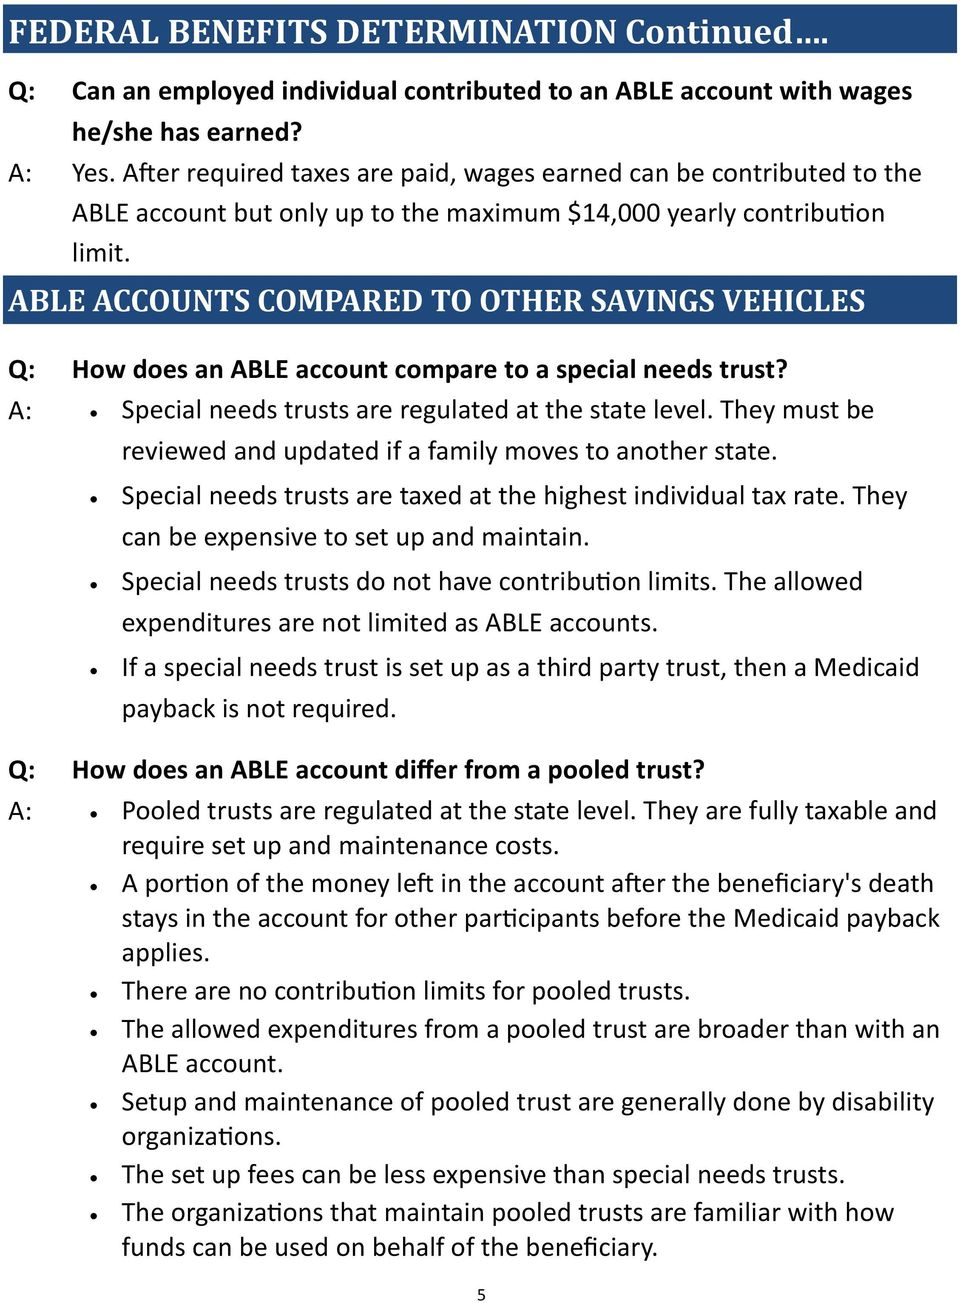 ABLE ACCOUNTS COMPARED TO OTHER SAVINGS VEHICLES Q: How does an ABLE account compare to a special needs trust? A: Special needs trusts are regulated at the state level.